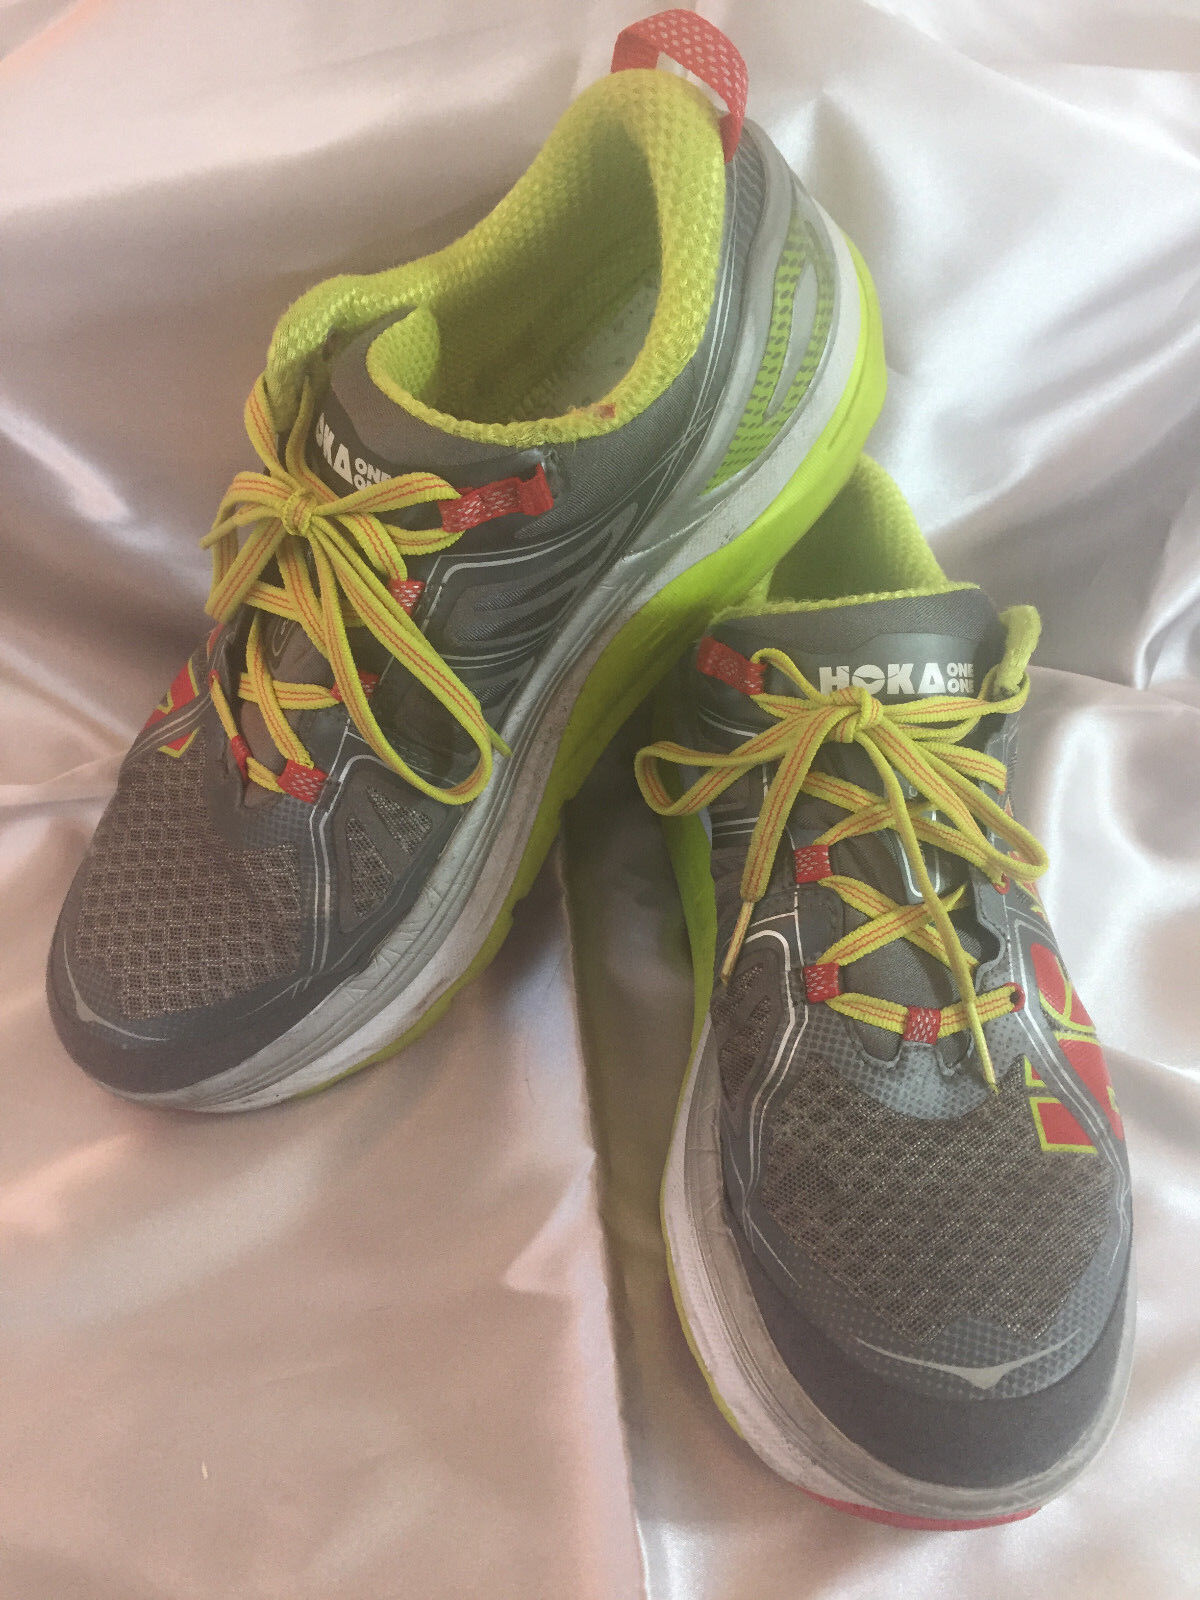 Women's Hoka One One Constant 2 Grey Acid 1009641 GAC Running shoes Size 10.5